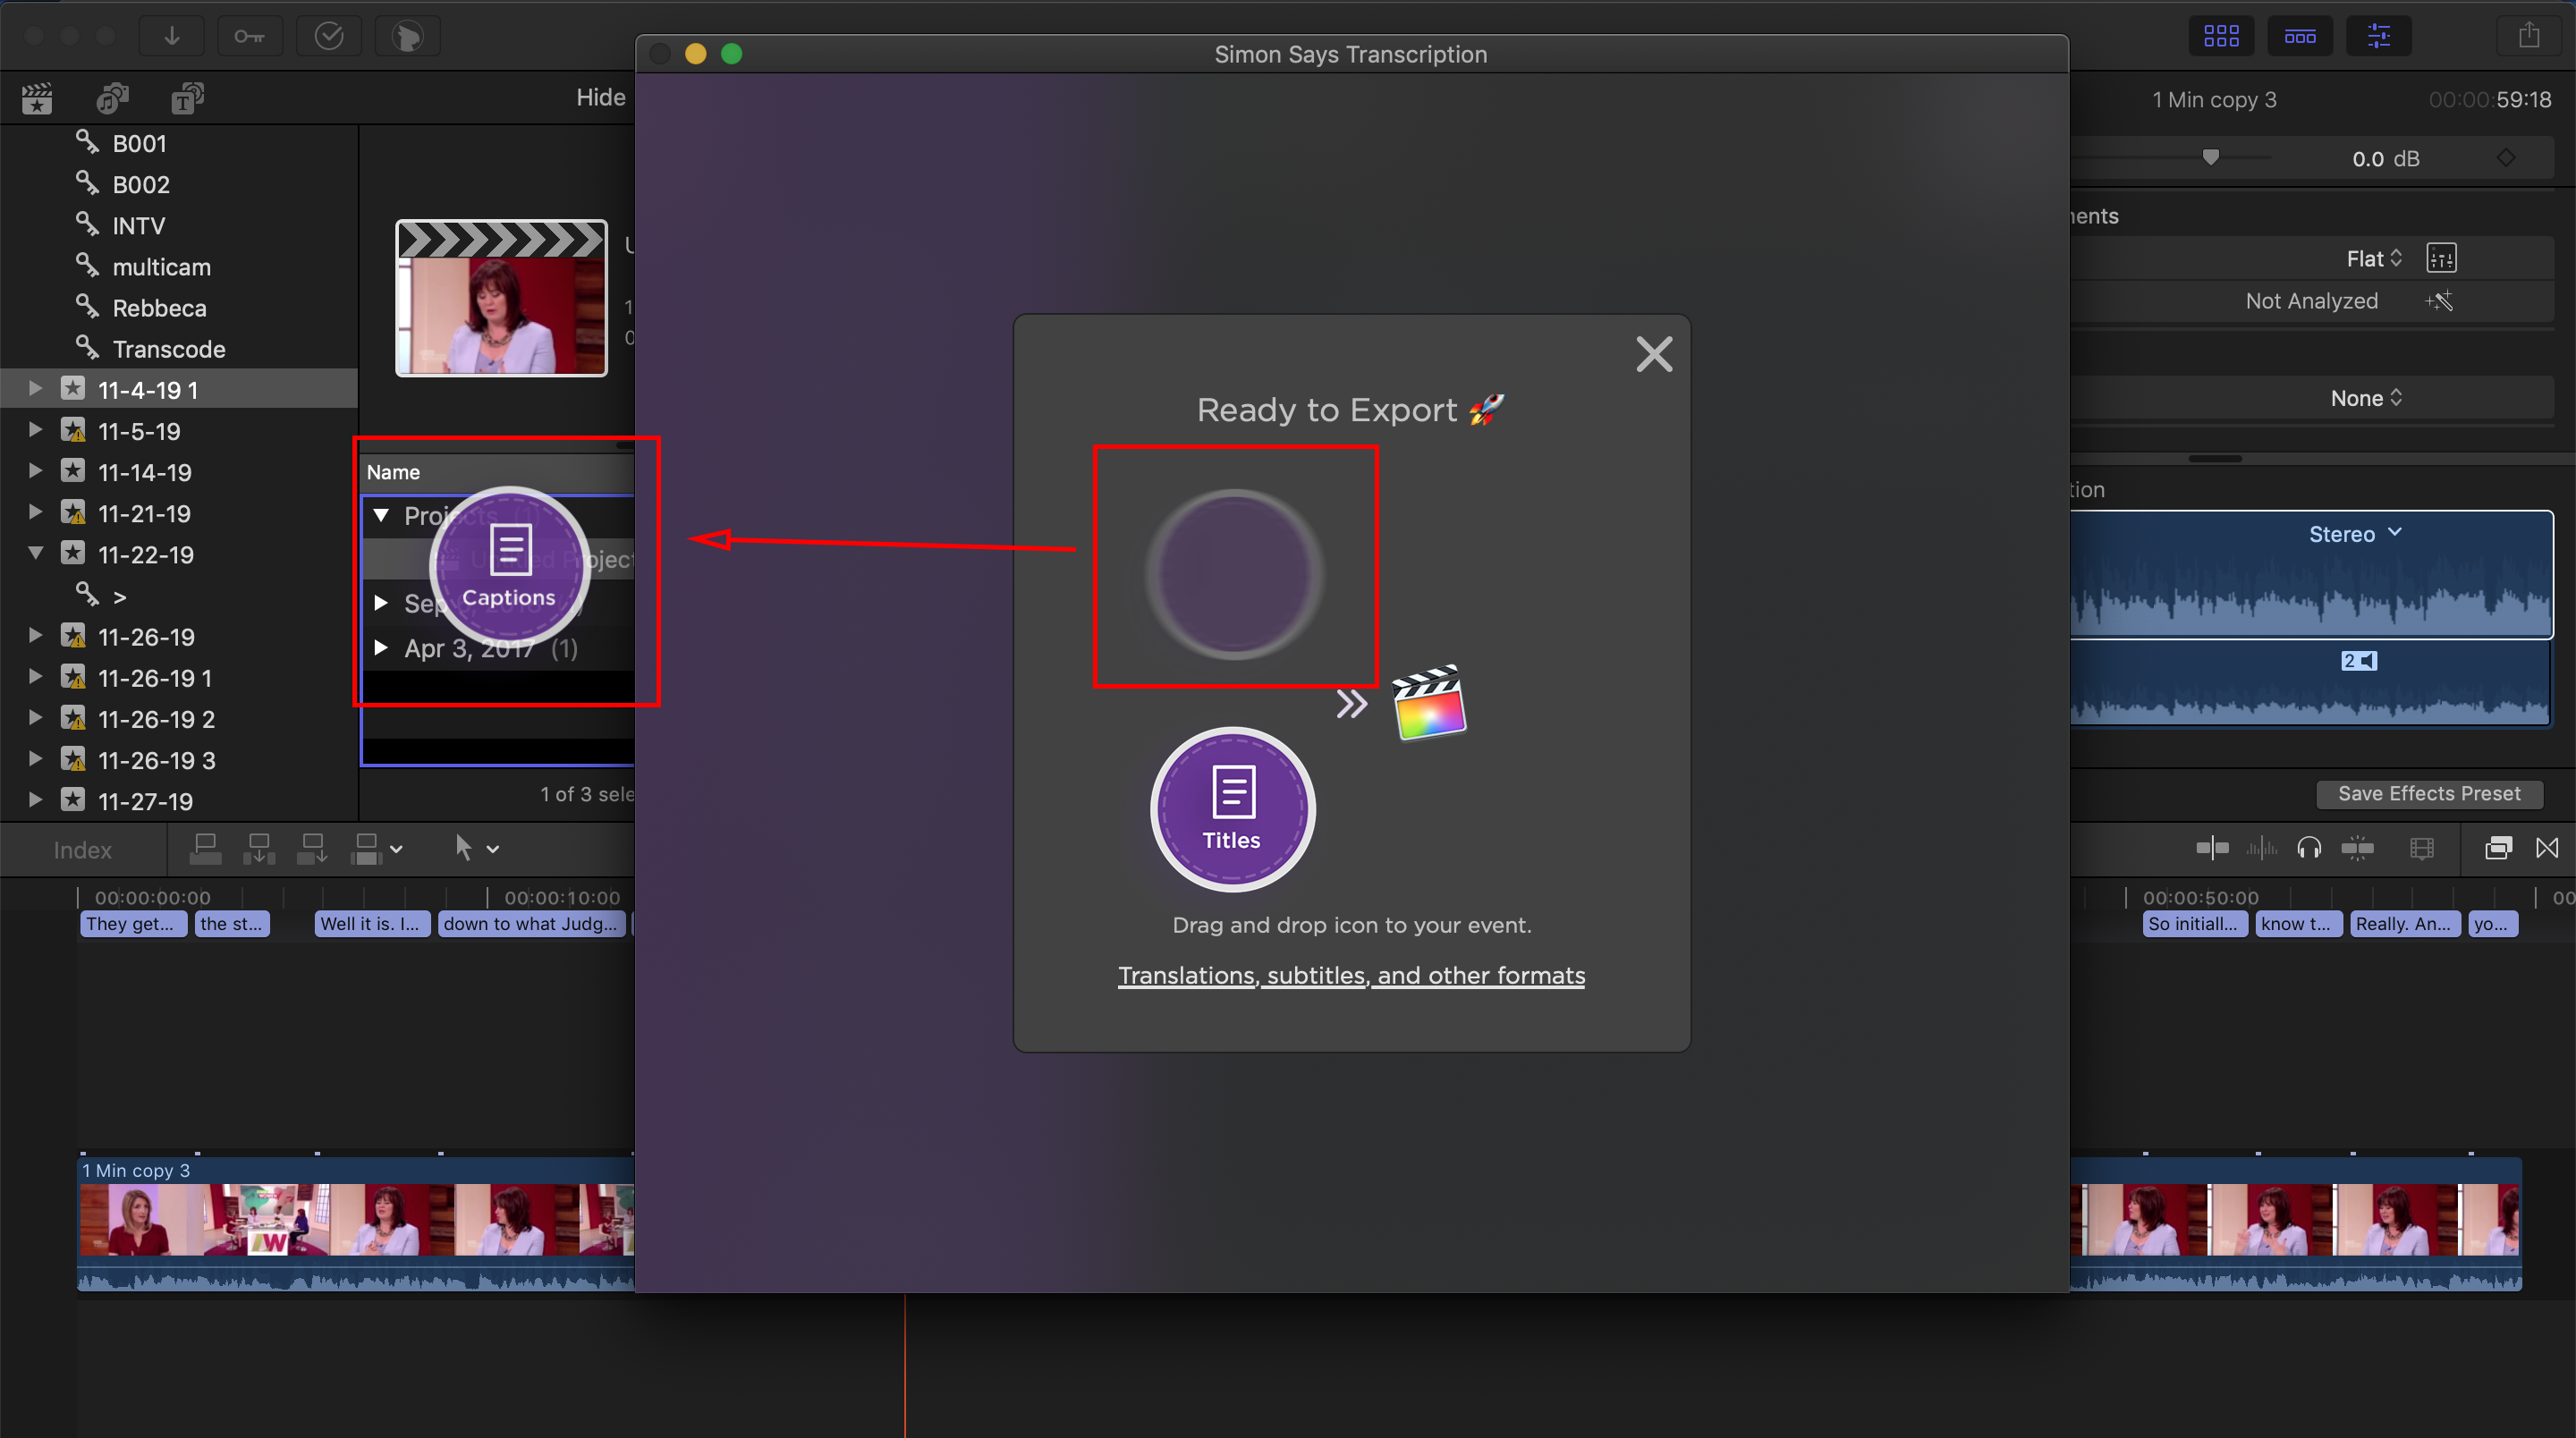 Then click export and drag the FCP Captions or FCP Titles icon back to your FCP Event